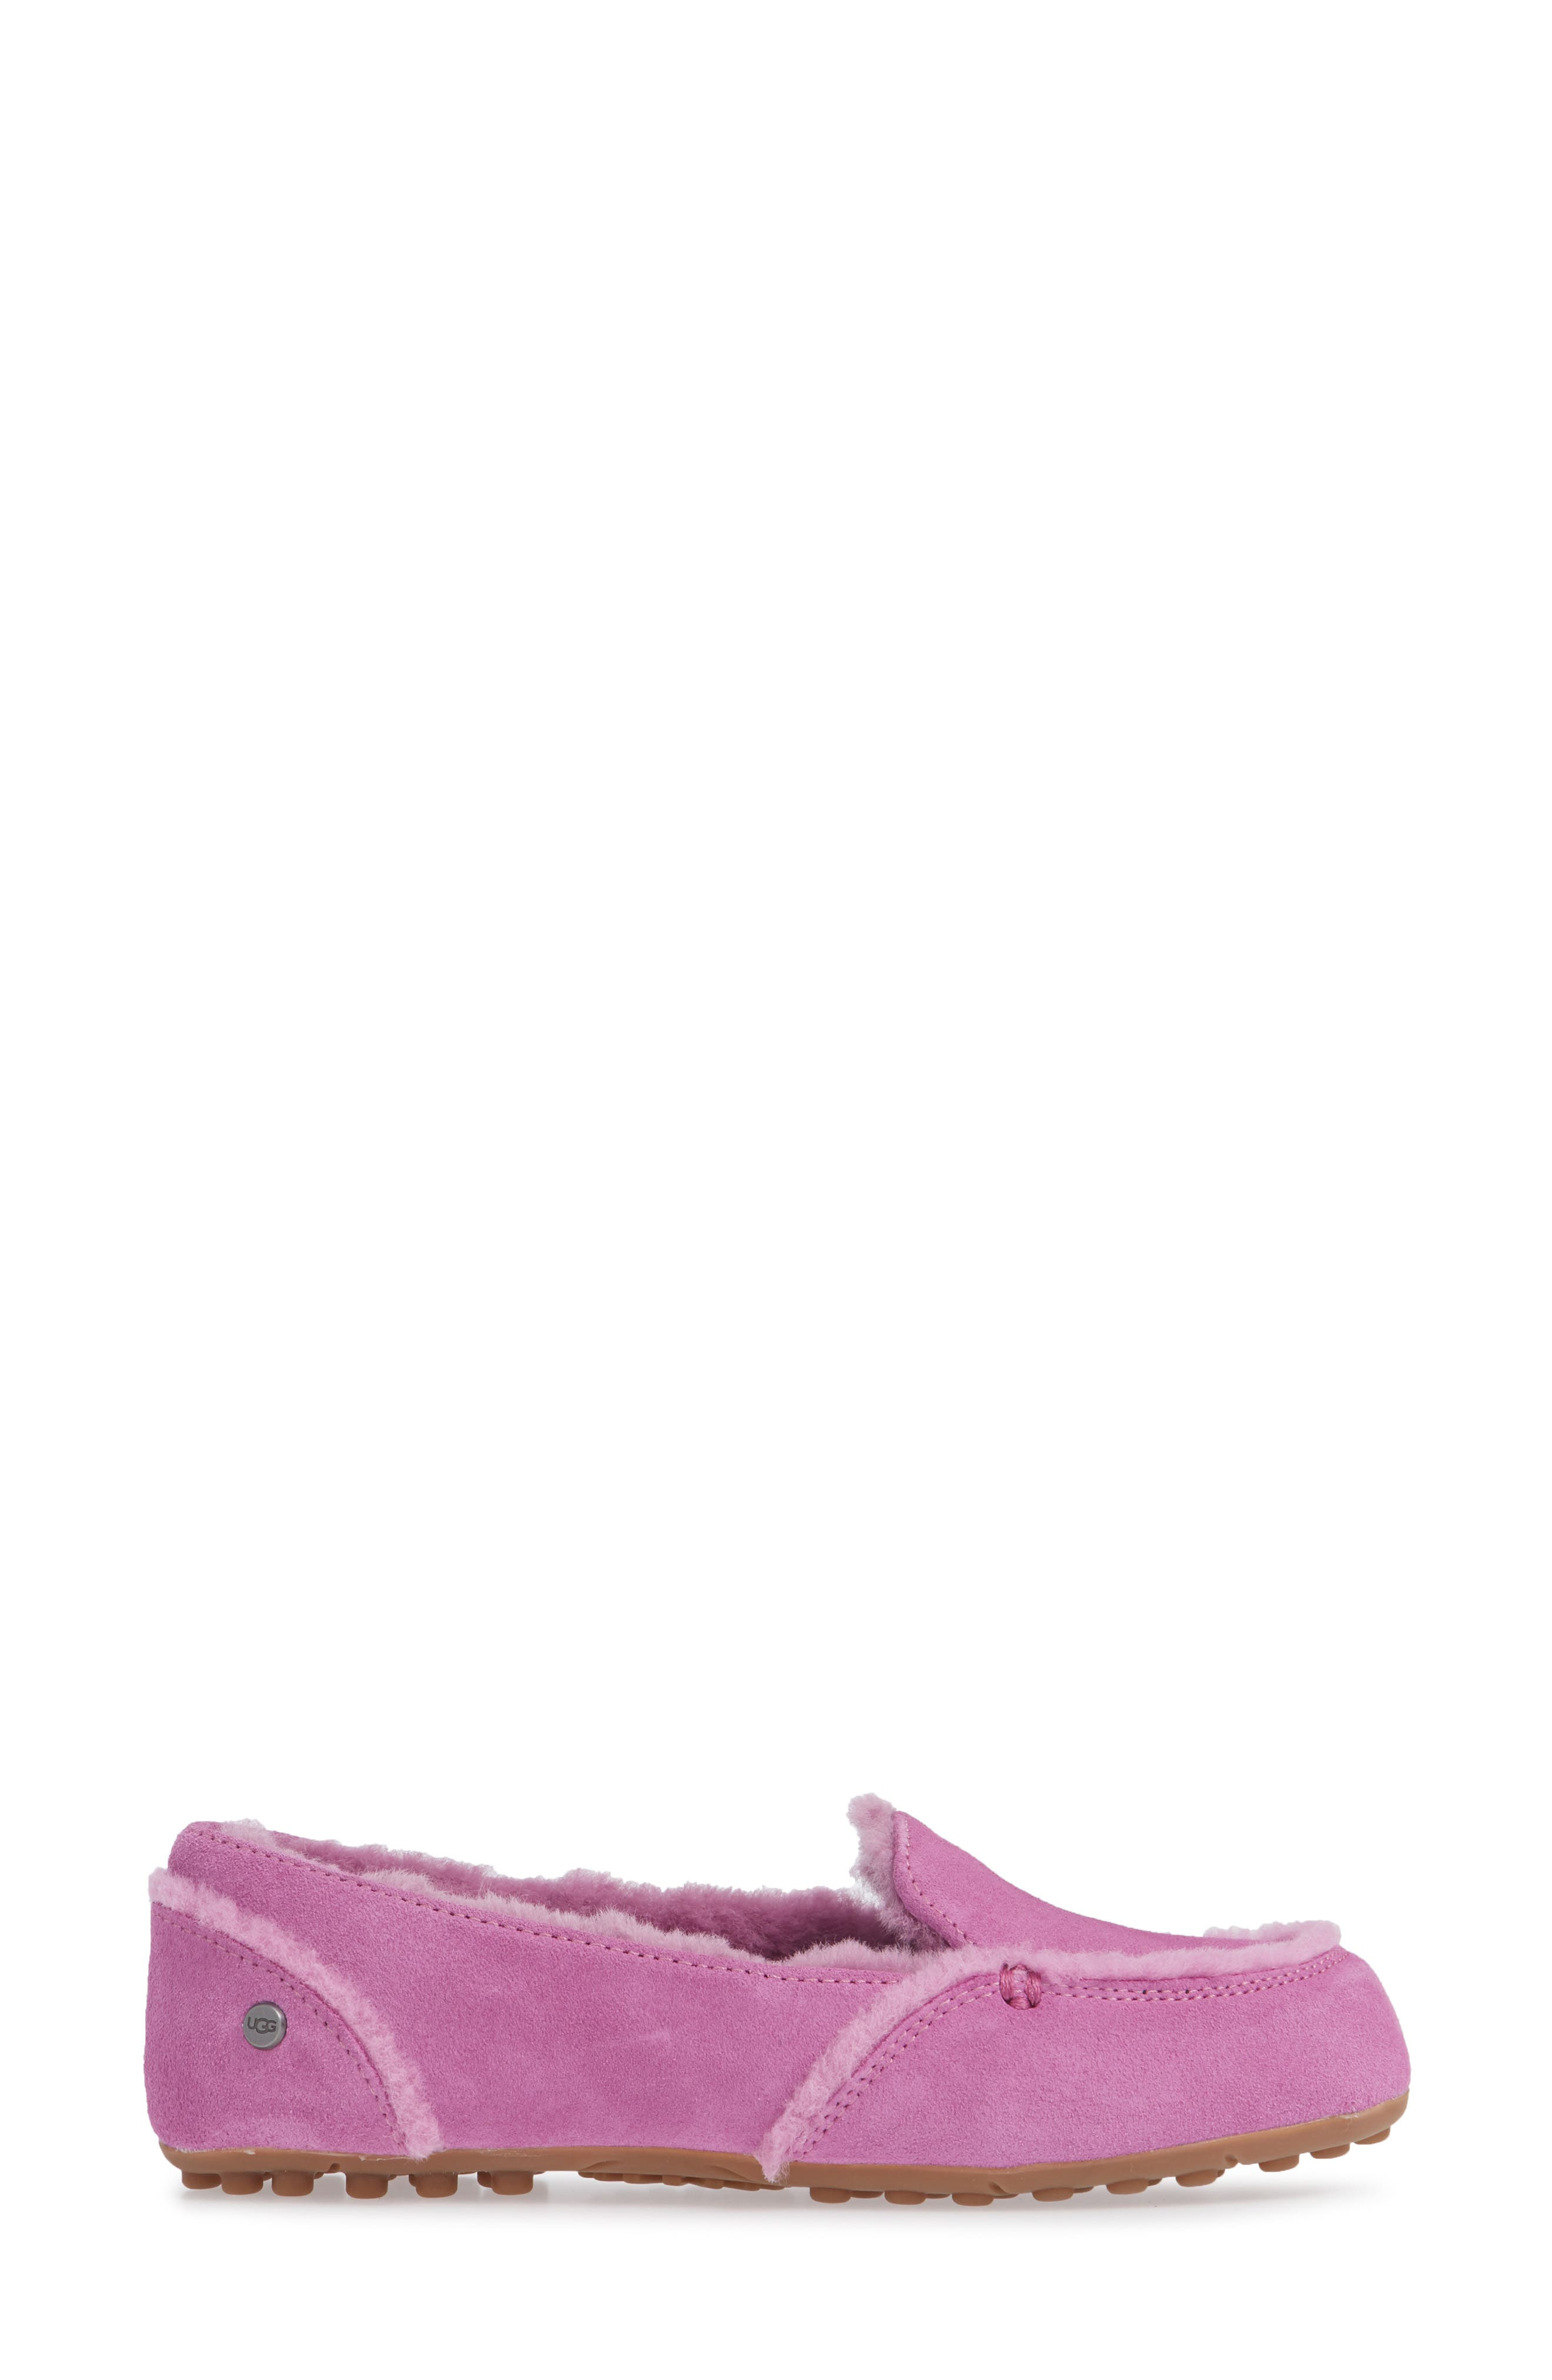 Hailey Slipper,                             Alternate thumbnail 3, color,                             BODACIOUS SUEDE